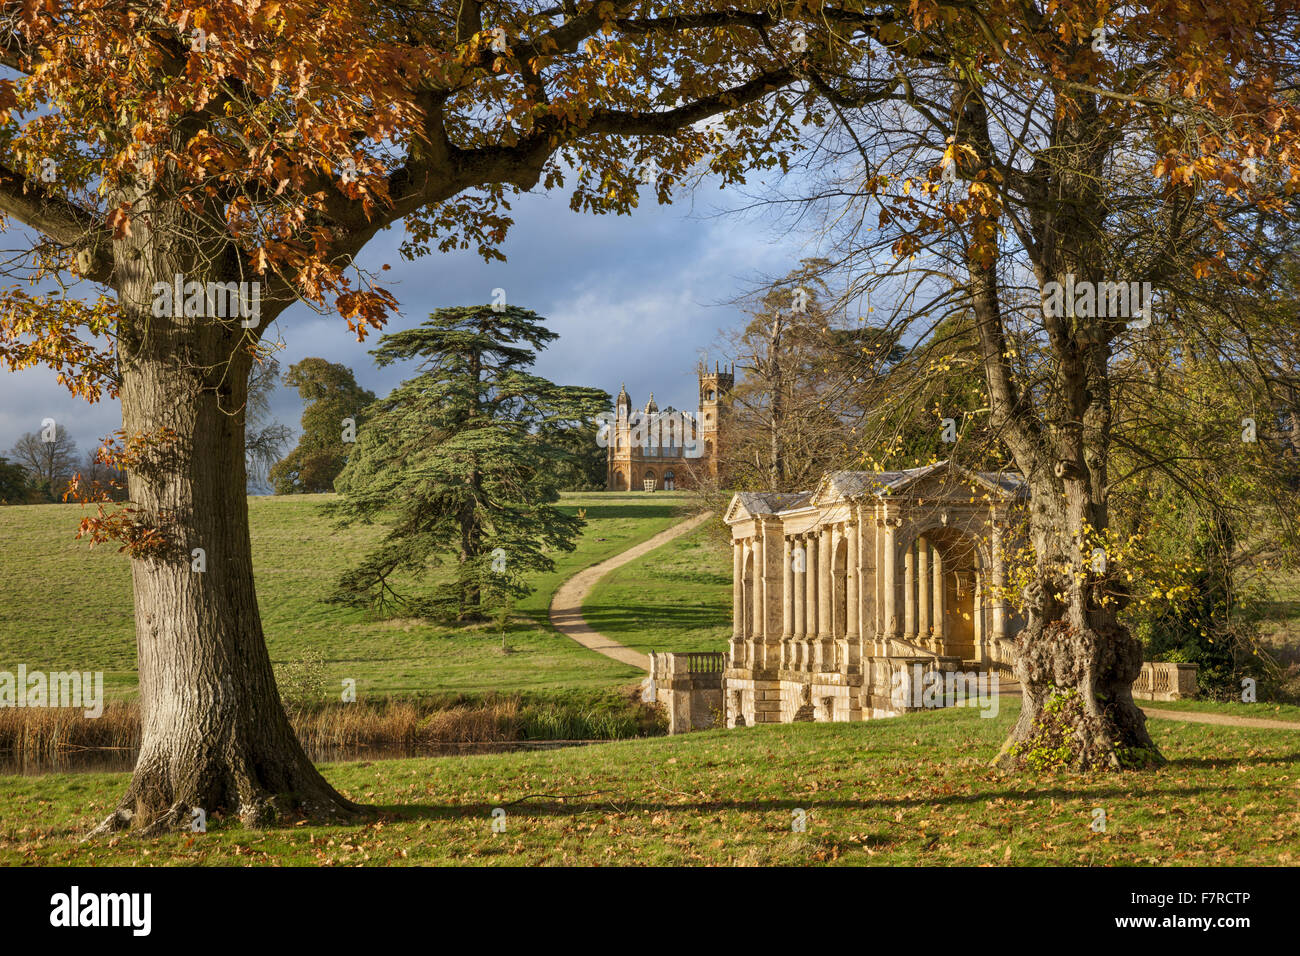 Stock Photo   The Palladian Bridge And Gothic Temple At Stowe,  Buckinghamshire. Stowe Is An 18th Century Landscaped Garden, And Includes  More Than 40 ...